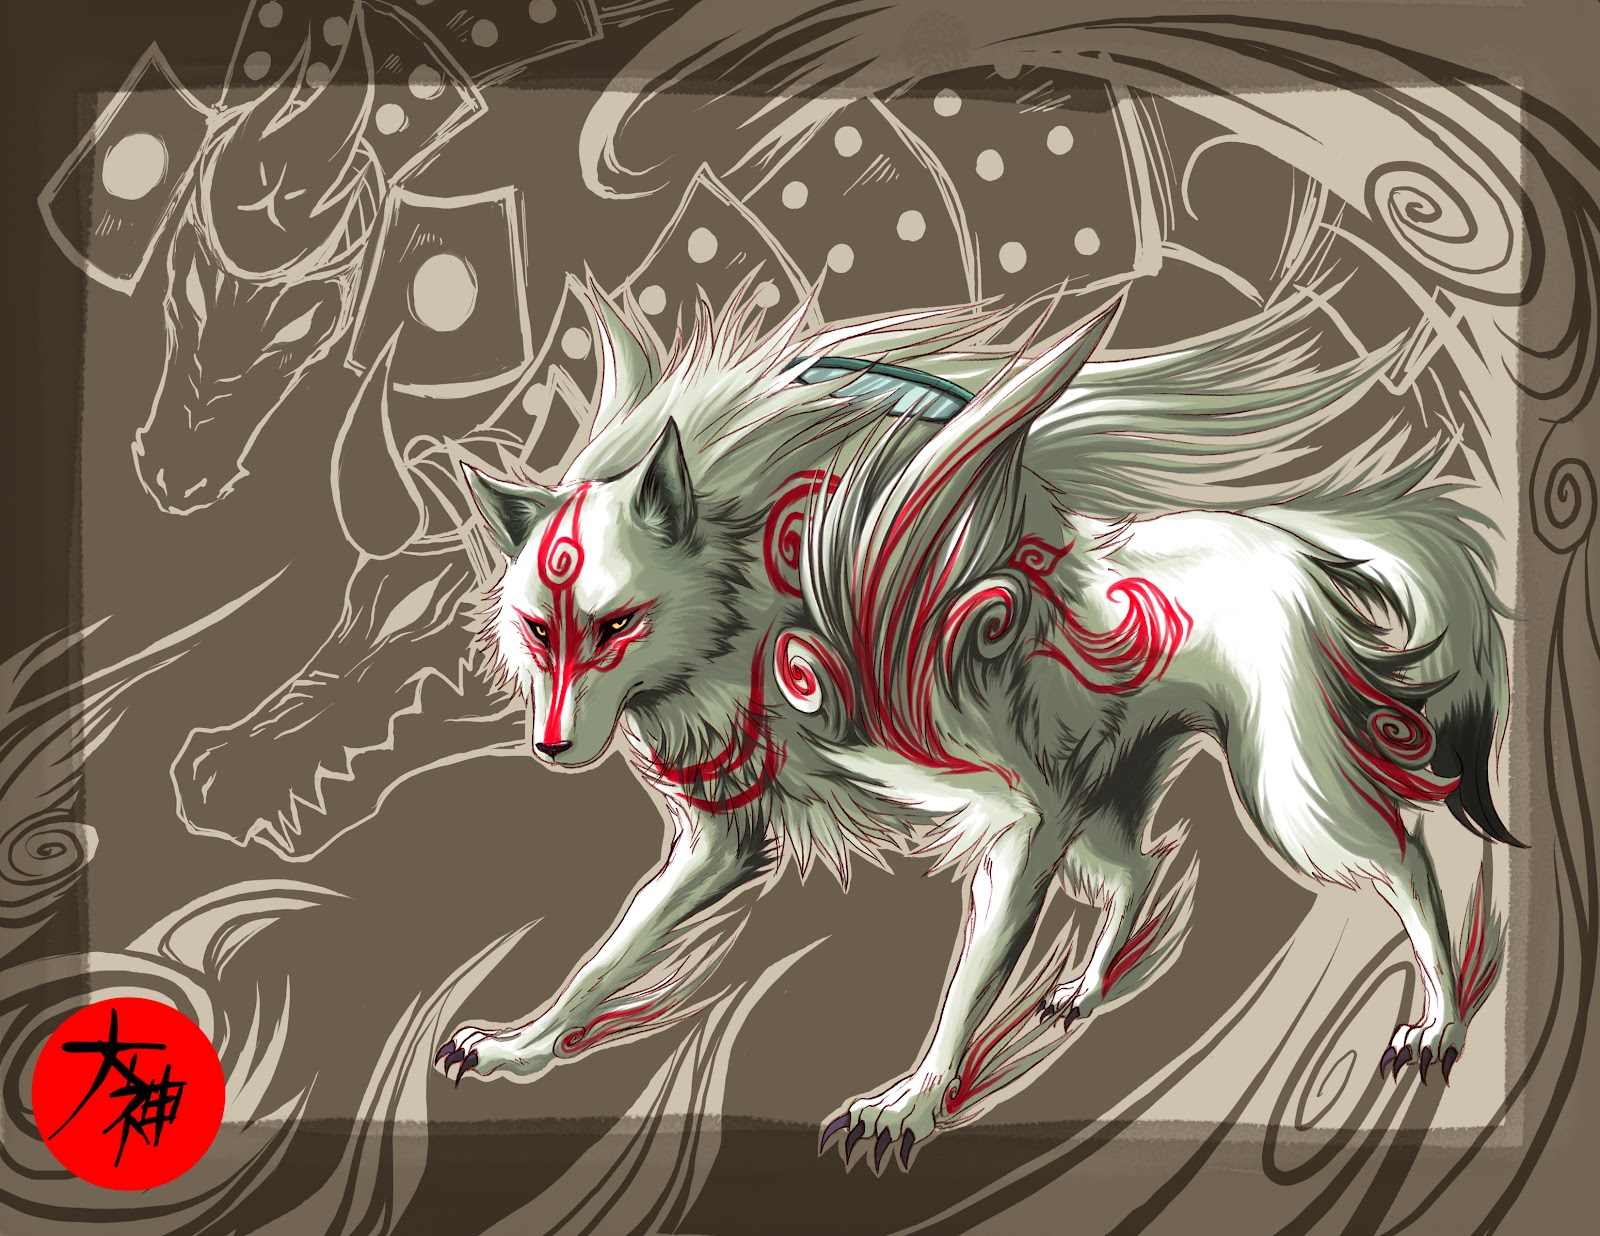 http://4.bp.blogspot.com/-rkJhAidoS_k/UAOJGhoAhCI/AAAAAAAABAM/bH-6Dhzh0r4/s1600/amaterasu+okami+orochi+wallpaper+background+capcom.jpg